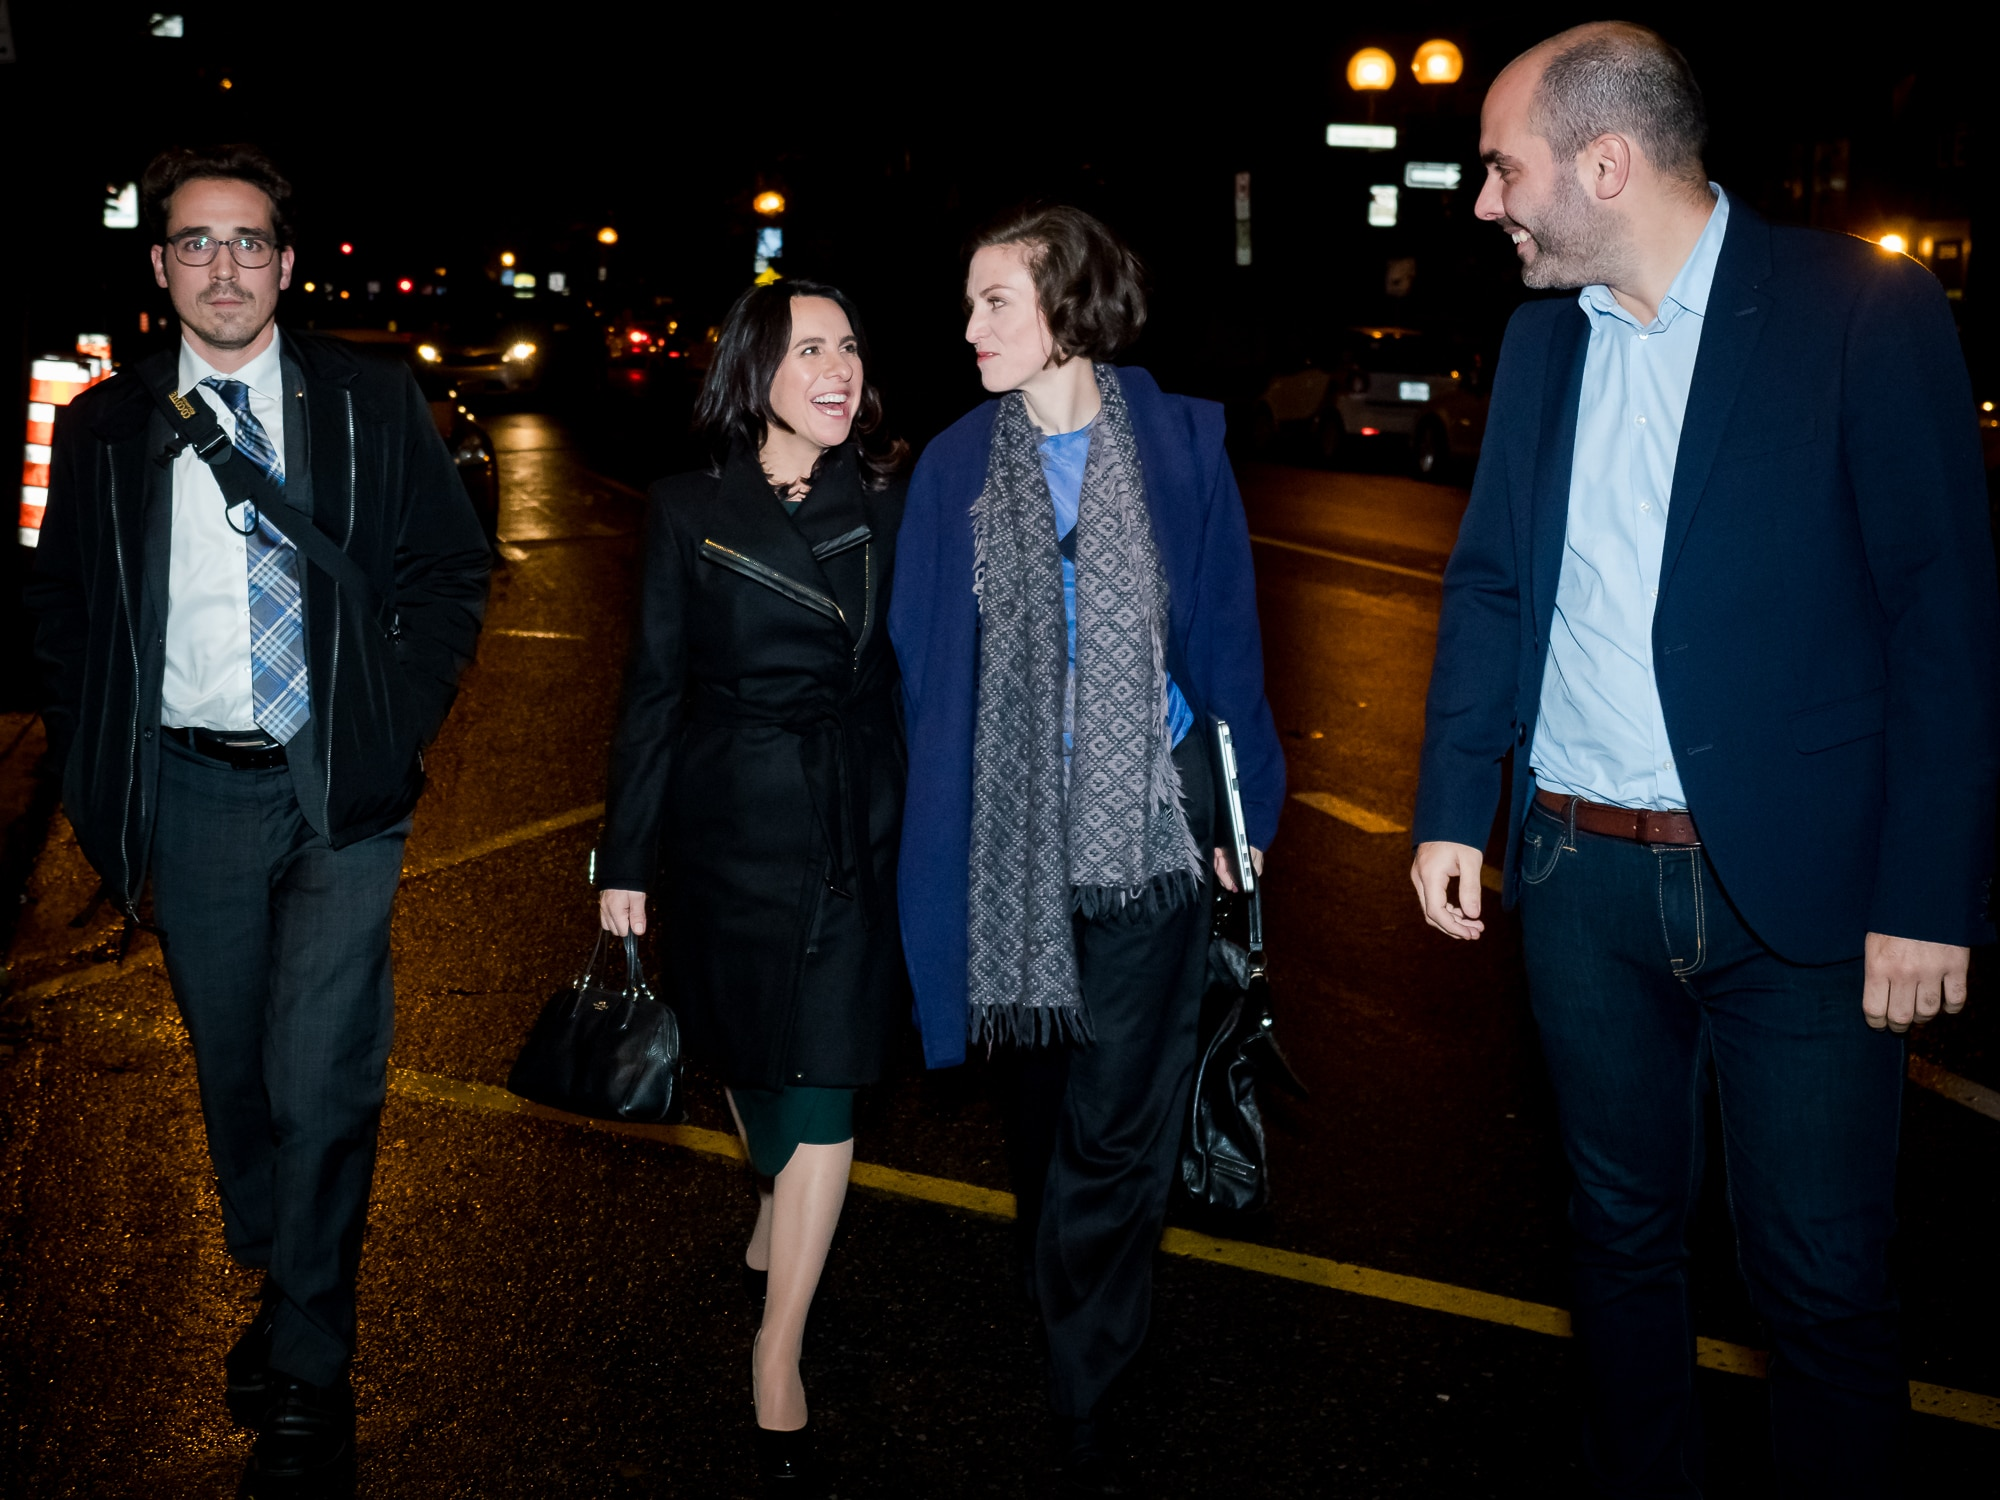 The unforgettable day of Valérie Plante. First woman mayor of Montreal.